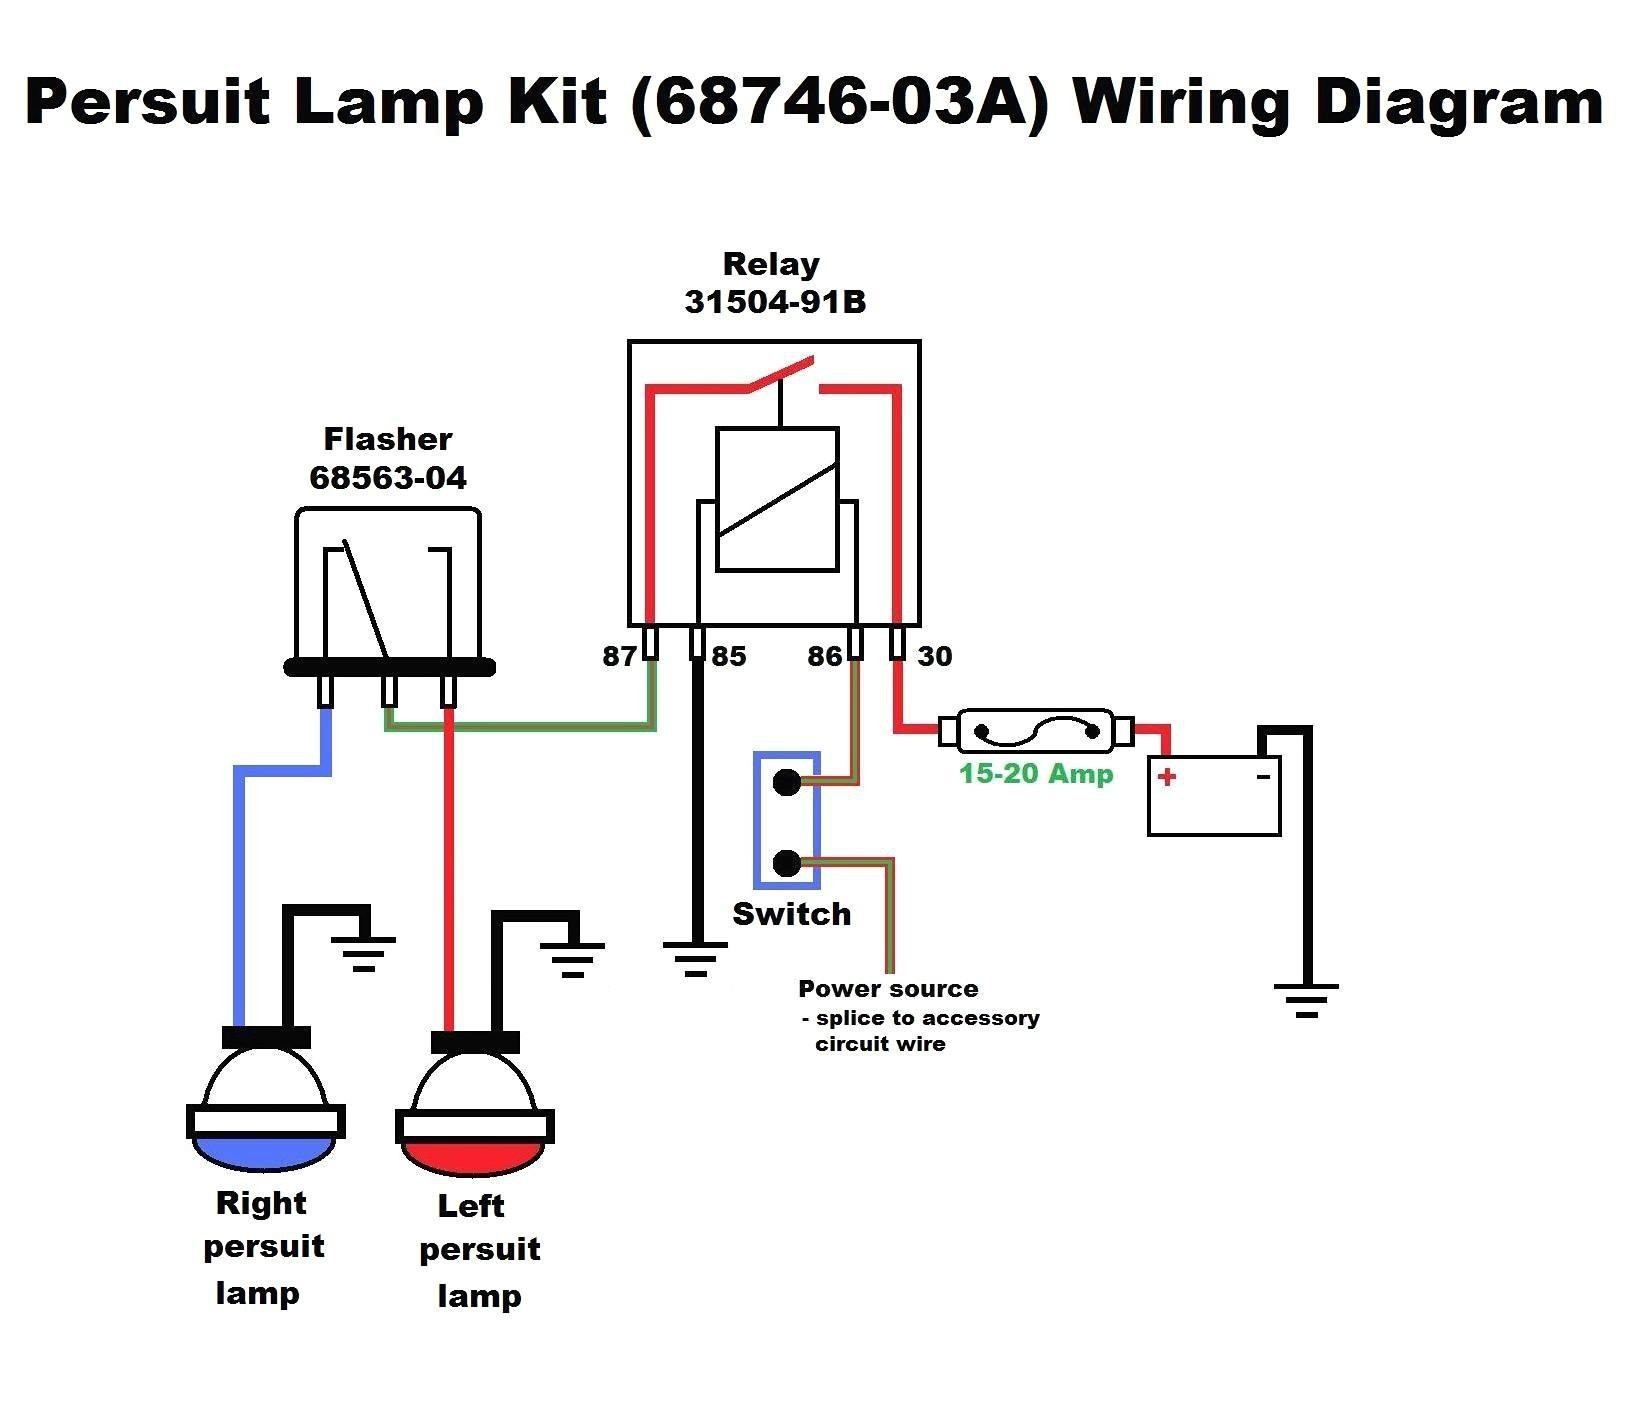 40 amp relay wiring diagram inspirational